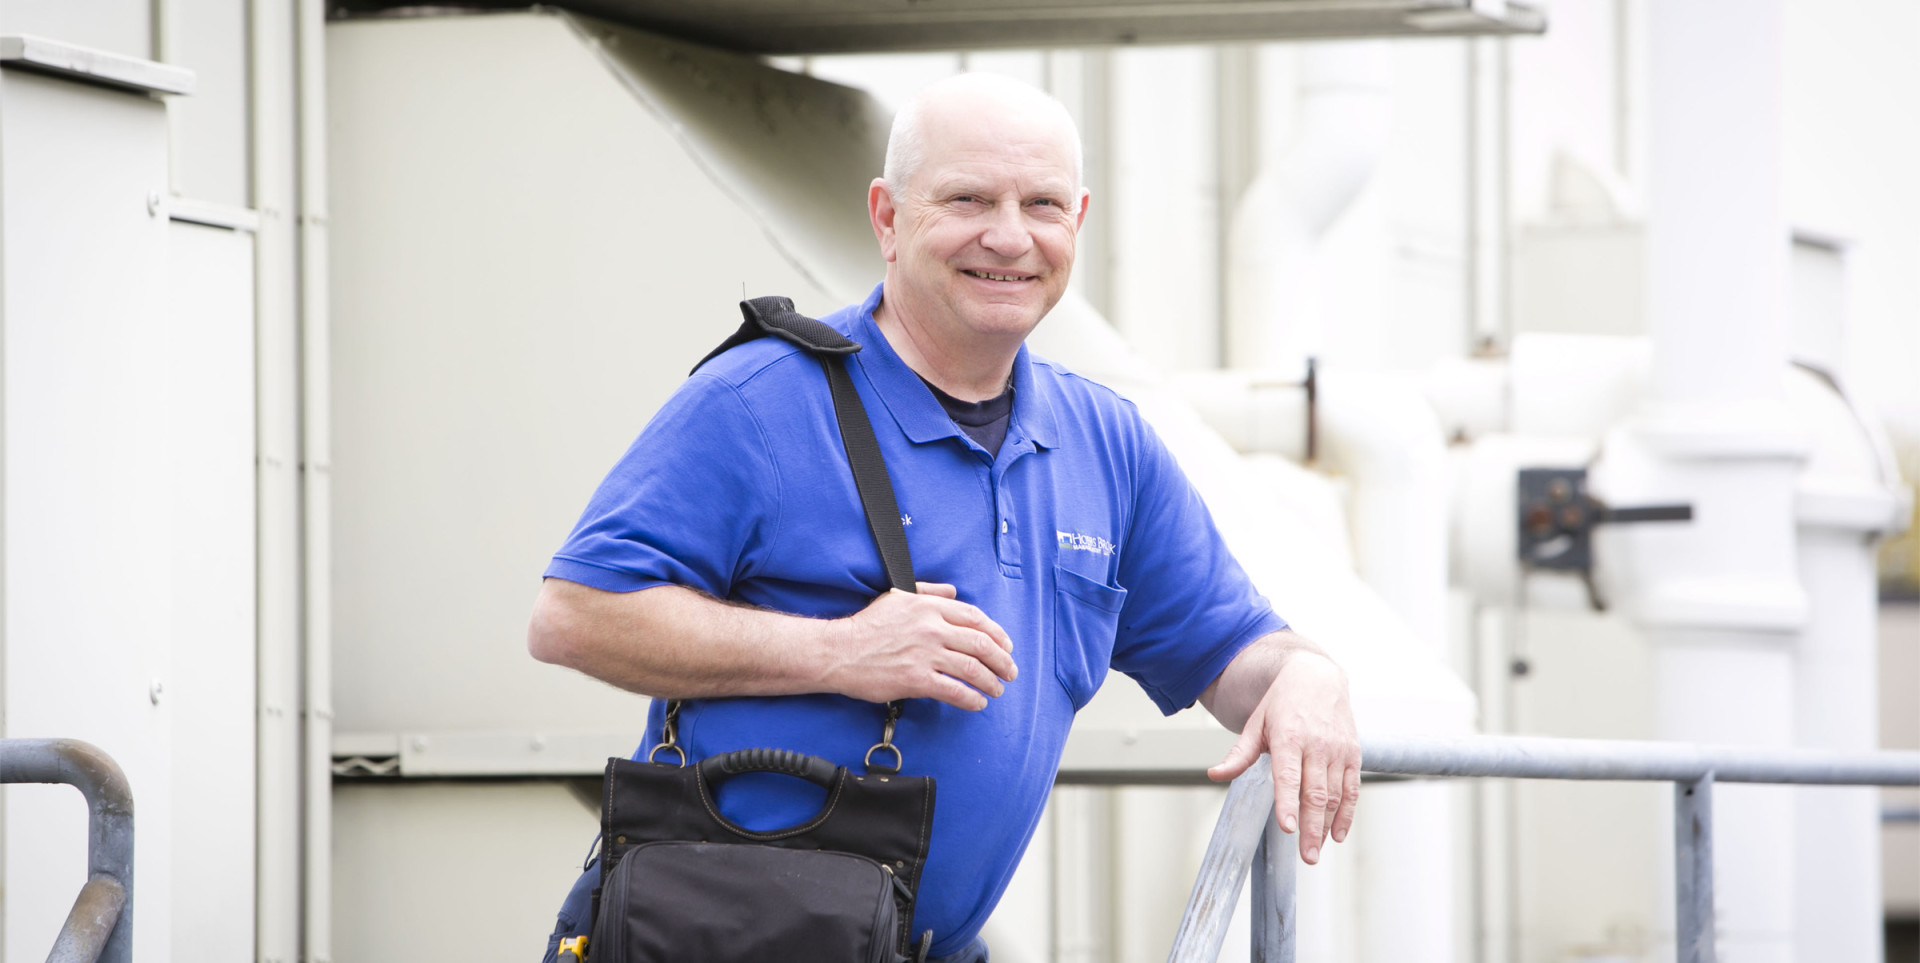 Facilities Management – Meet Chuck